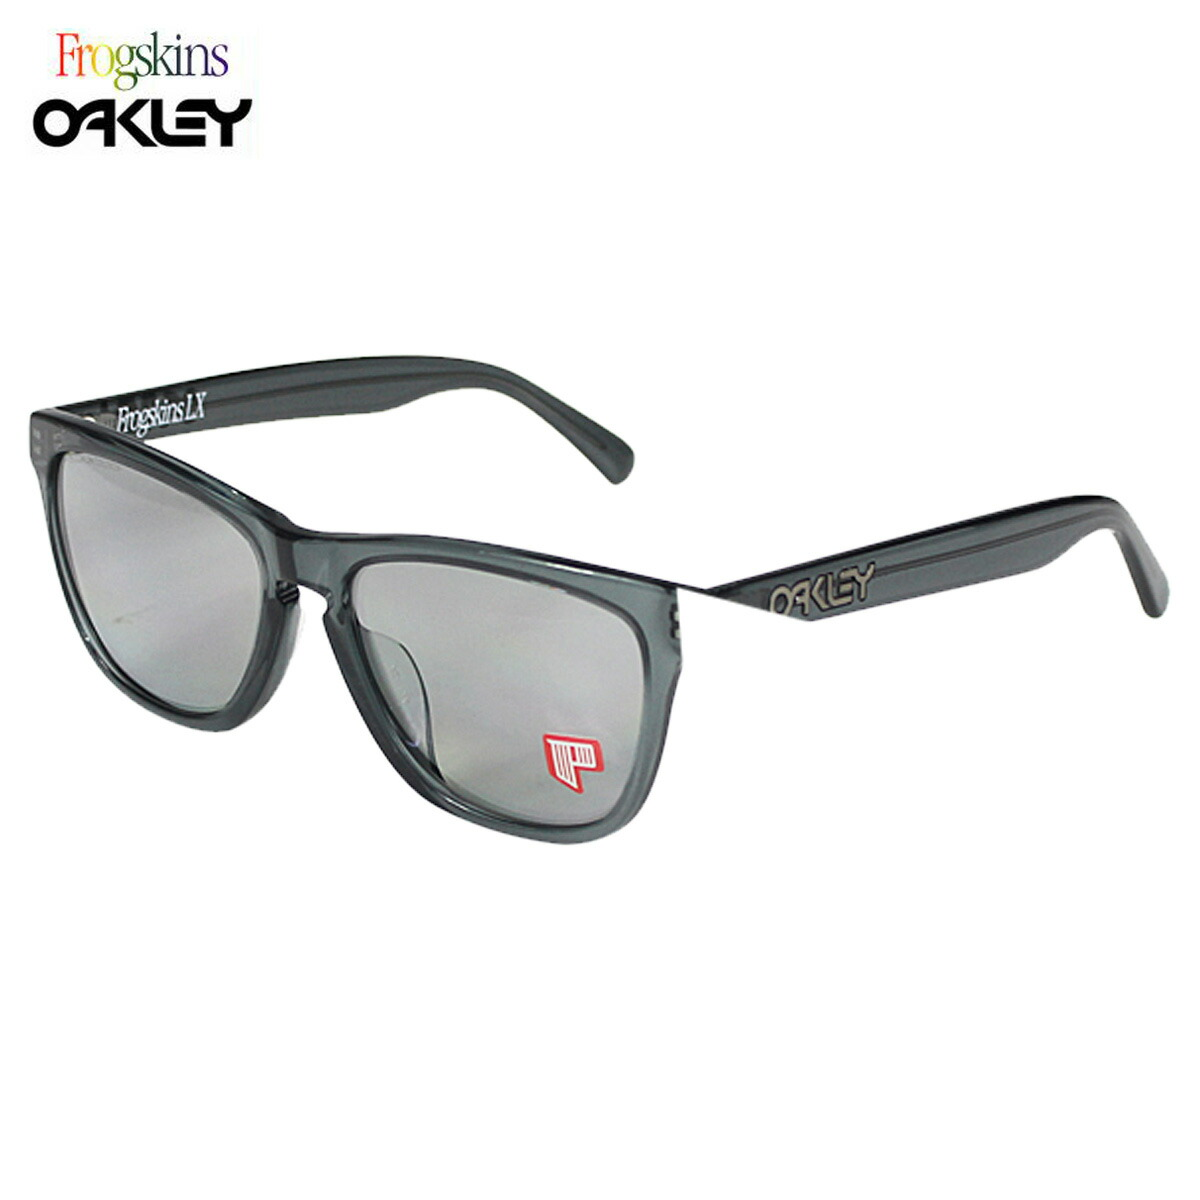 oakley frogskins lx polarized sunglasses  oakley oakley sunglasses polarized frogskins lx polarized frog skin mens womens polarized lens glasses asian fit oo2039 04 unisex